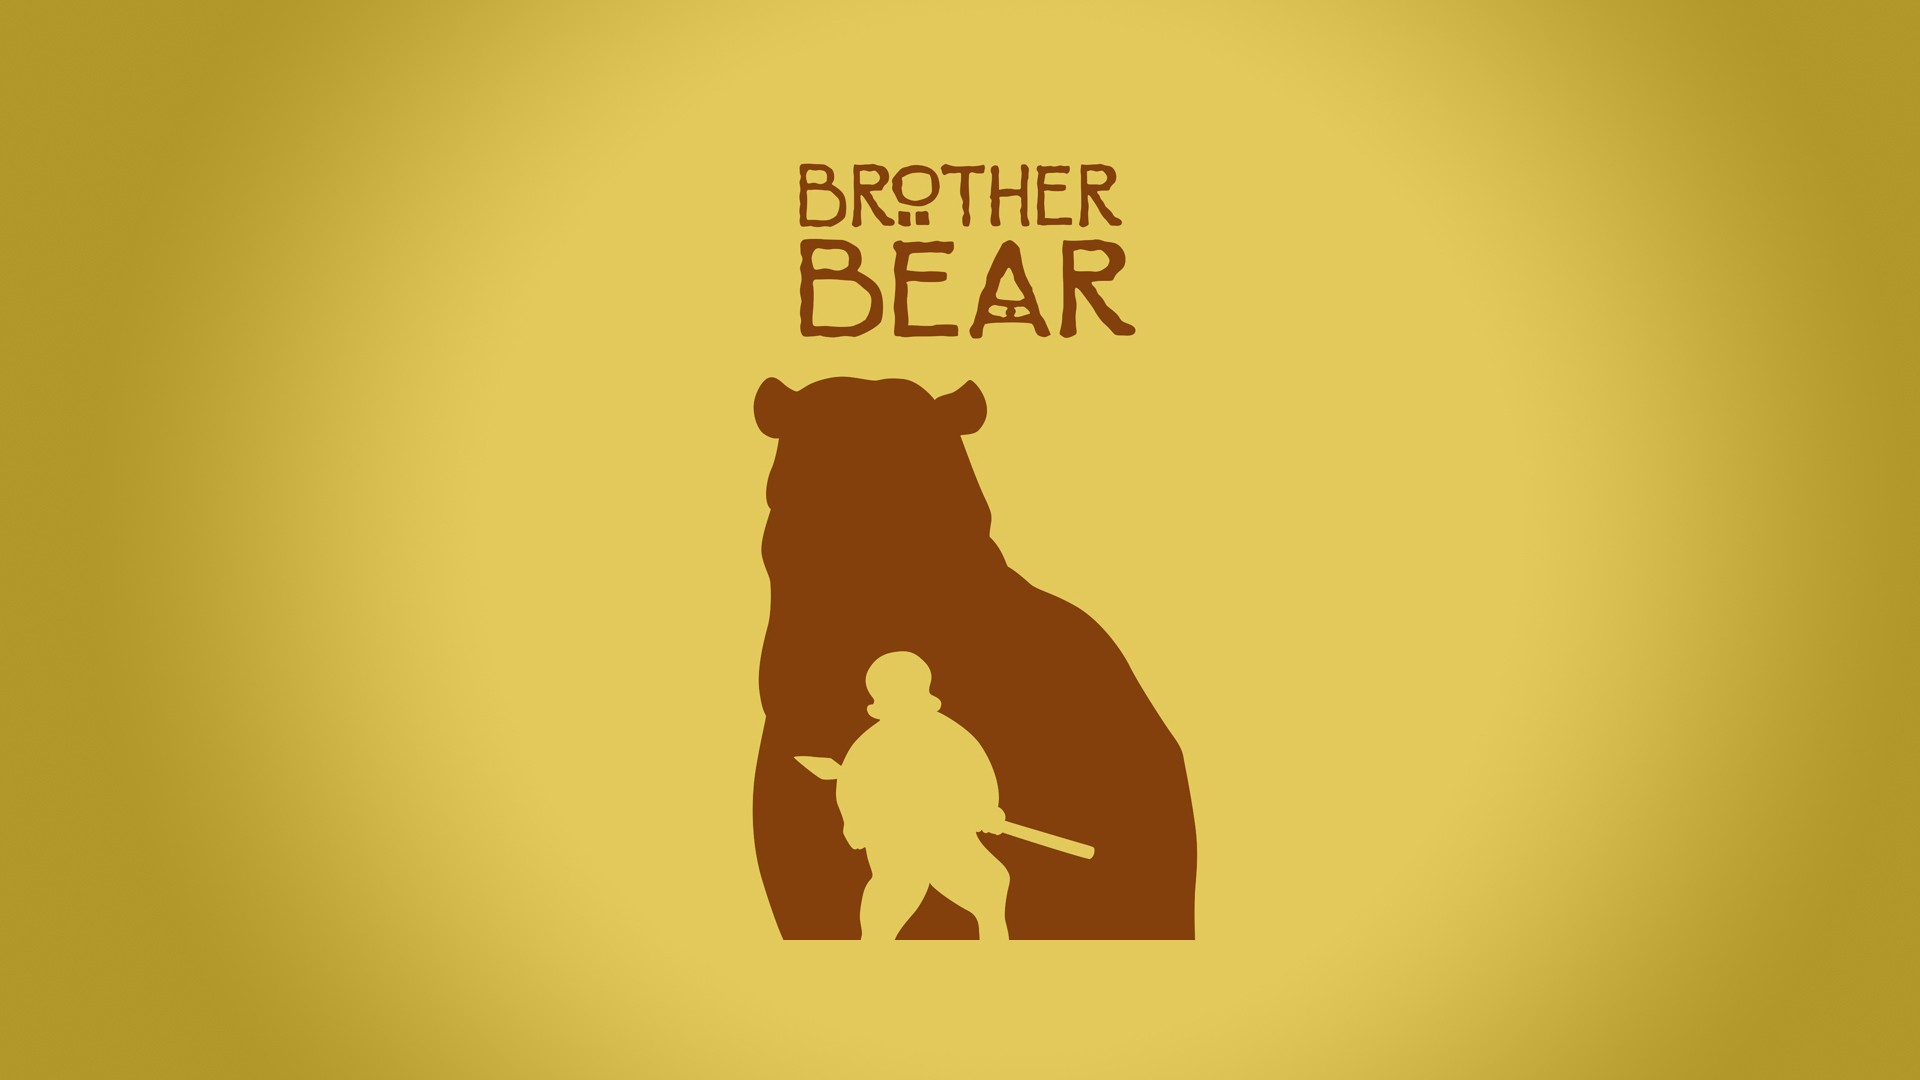 6 Brother Bear Hd Wallpapers  Background Images - Wallpaper Abyss-8622